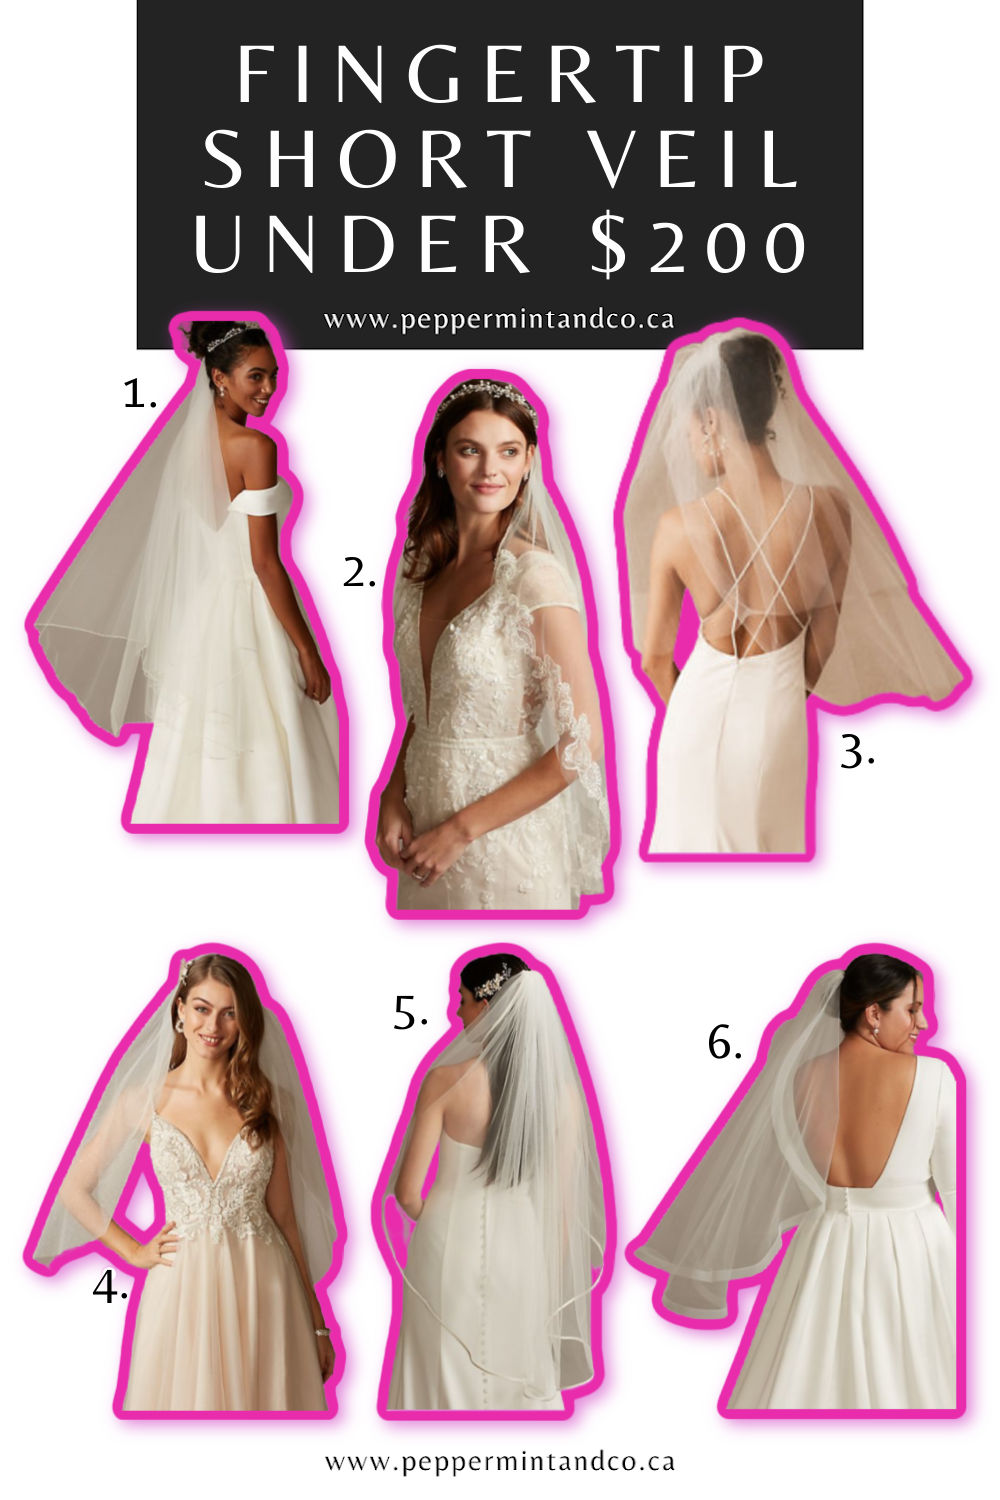 Fingertip Short Veils Under $200